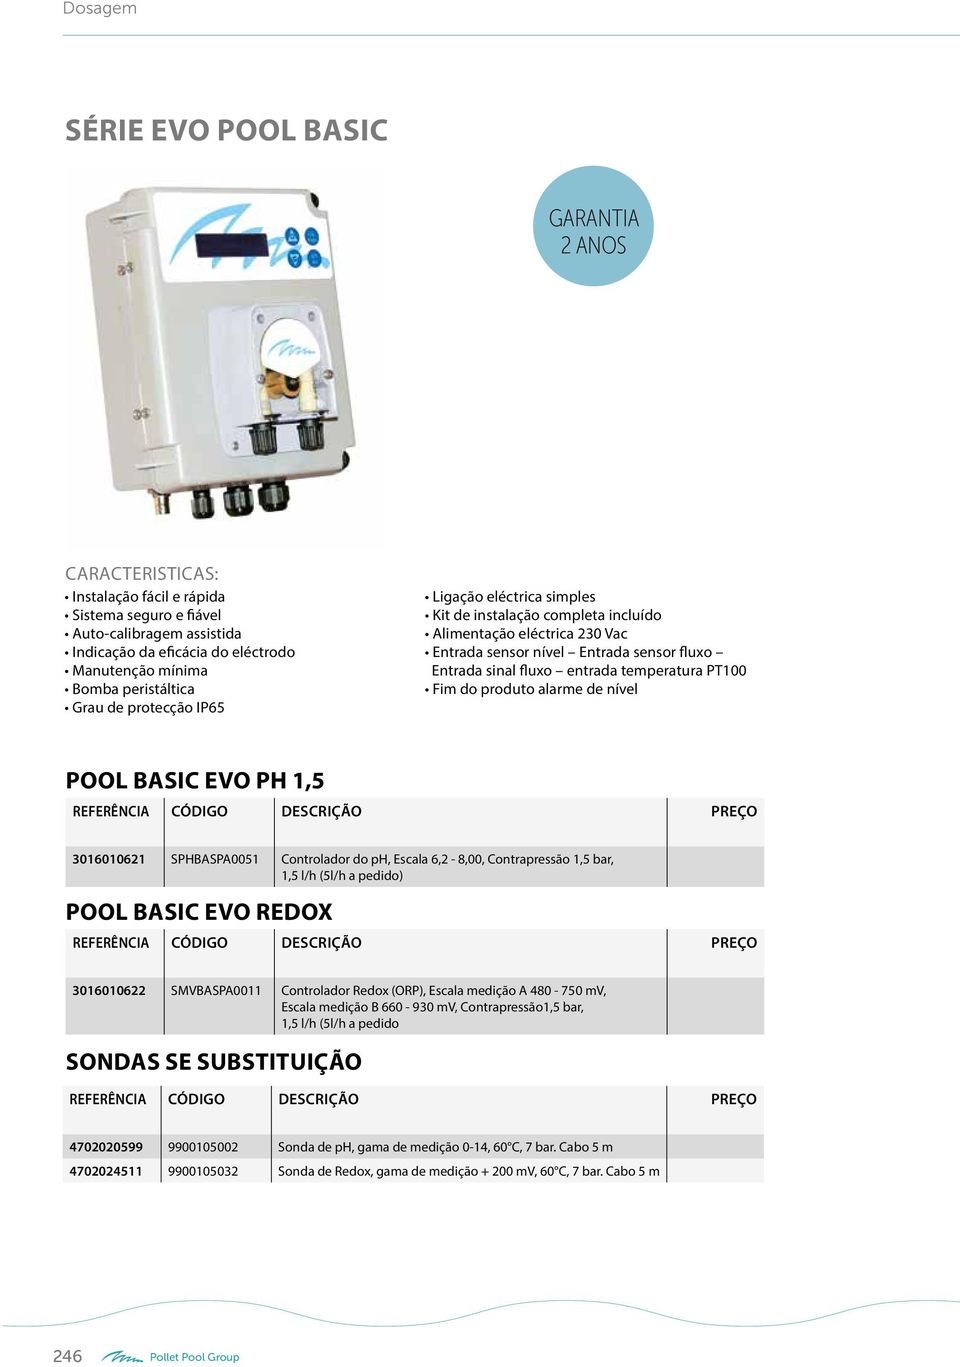 do produto alarme de nível POOL BASIC EVO PH 1,5 3016010621 SPHBASPA0051 Controlador do ph, Escala 6,2-8,00, Contrapressão 1,5 bar, 1,5 l/h (5l/h a pedido) POOL BASIC EVO REDOX 3016010622